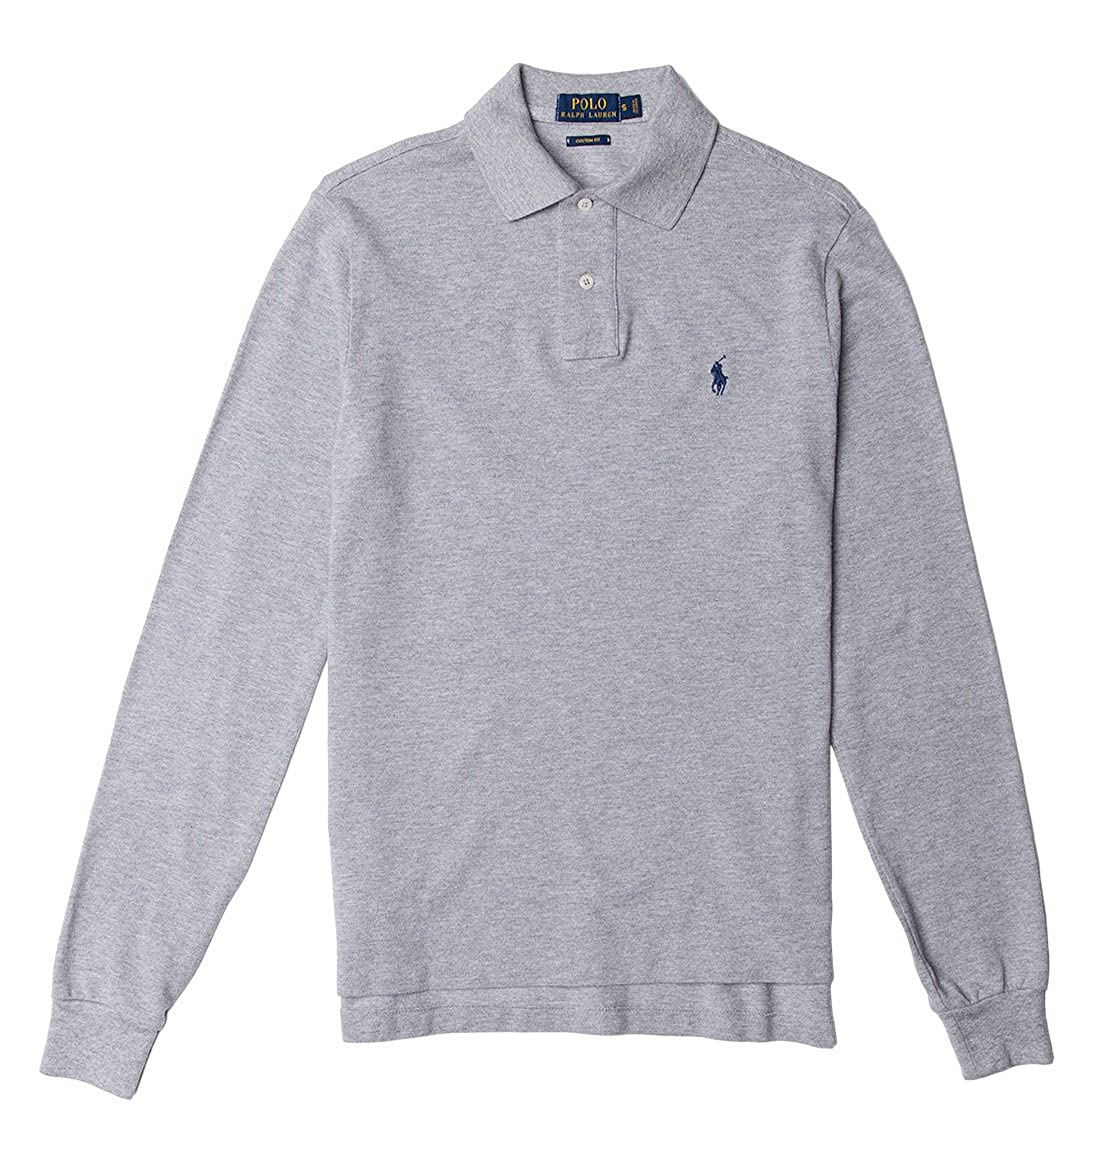 Amazon Polo Ralph Lauren Mens Custom Fit Mesh Long Sleeve Polo